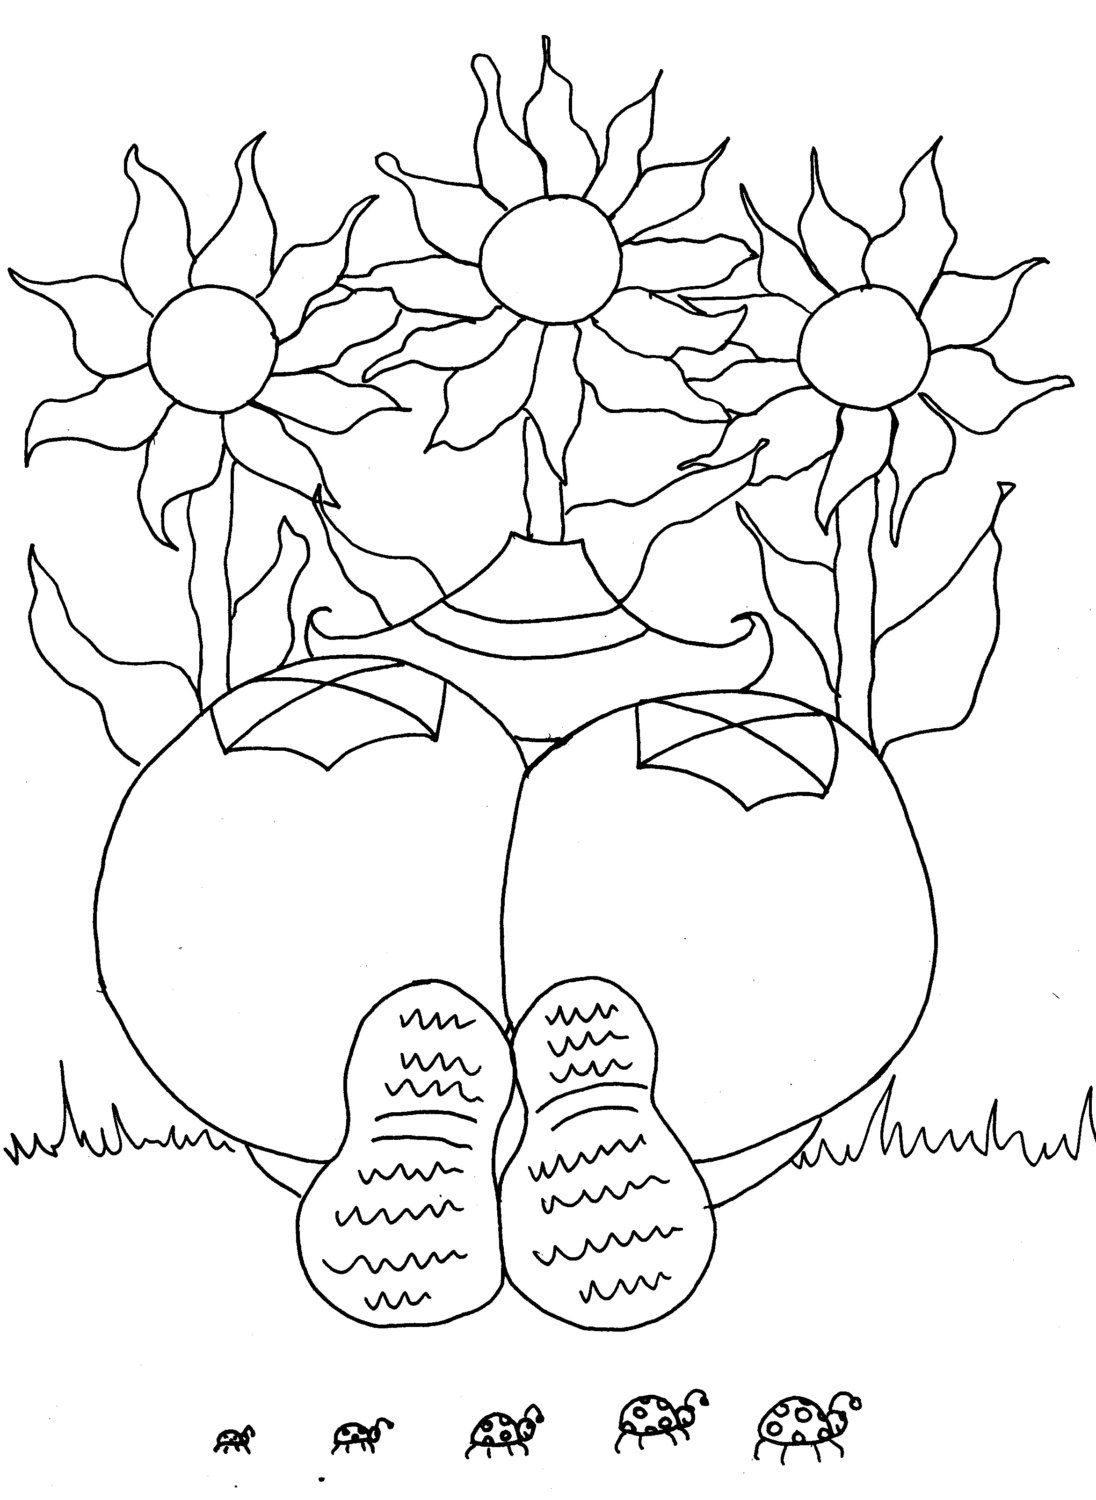 Flower garden coloring pages printable - Sunflower Gardener Girl Funny Adult Coloring Page From Chubby Art Cartoon Diy Printable Coloring Pages Spring Garden Flower Inspiration